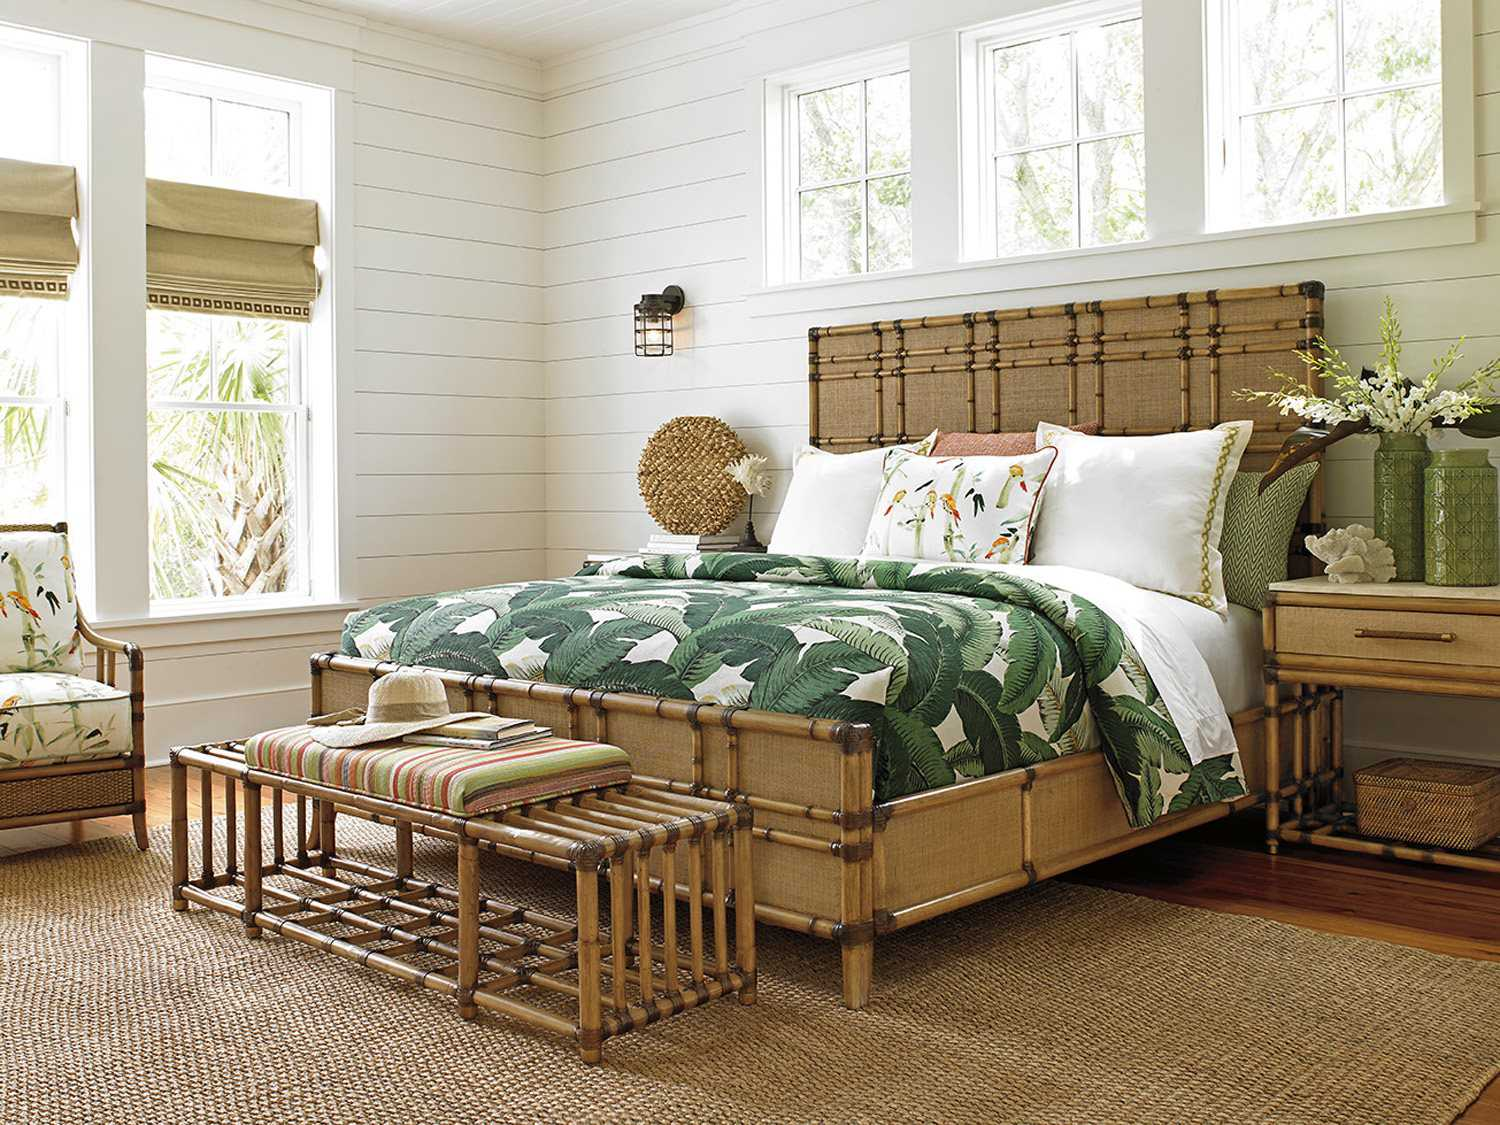 astounding tommy bahama bedroom furniture white | Tommy Bahama Twin Palms Panel Bed Bedroom Set | TOTWINPBEDSET